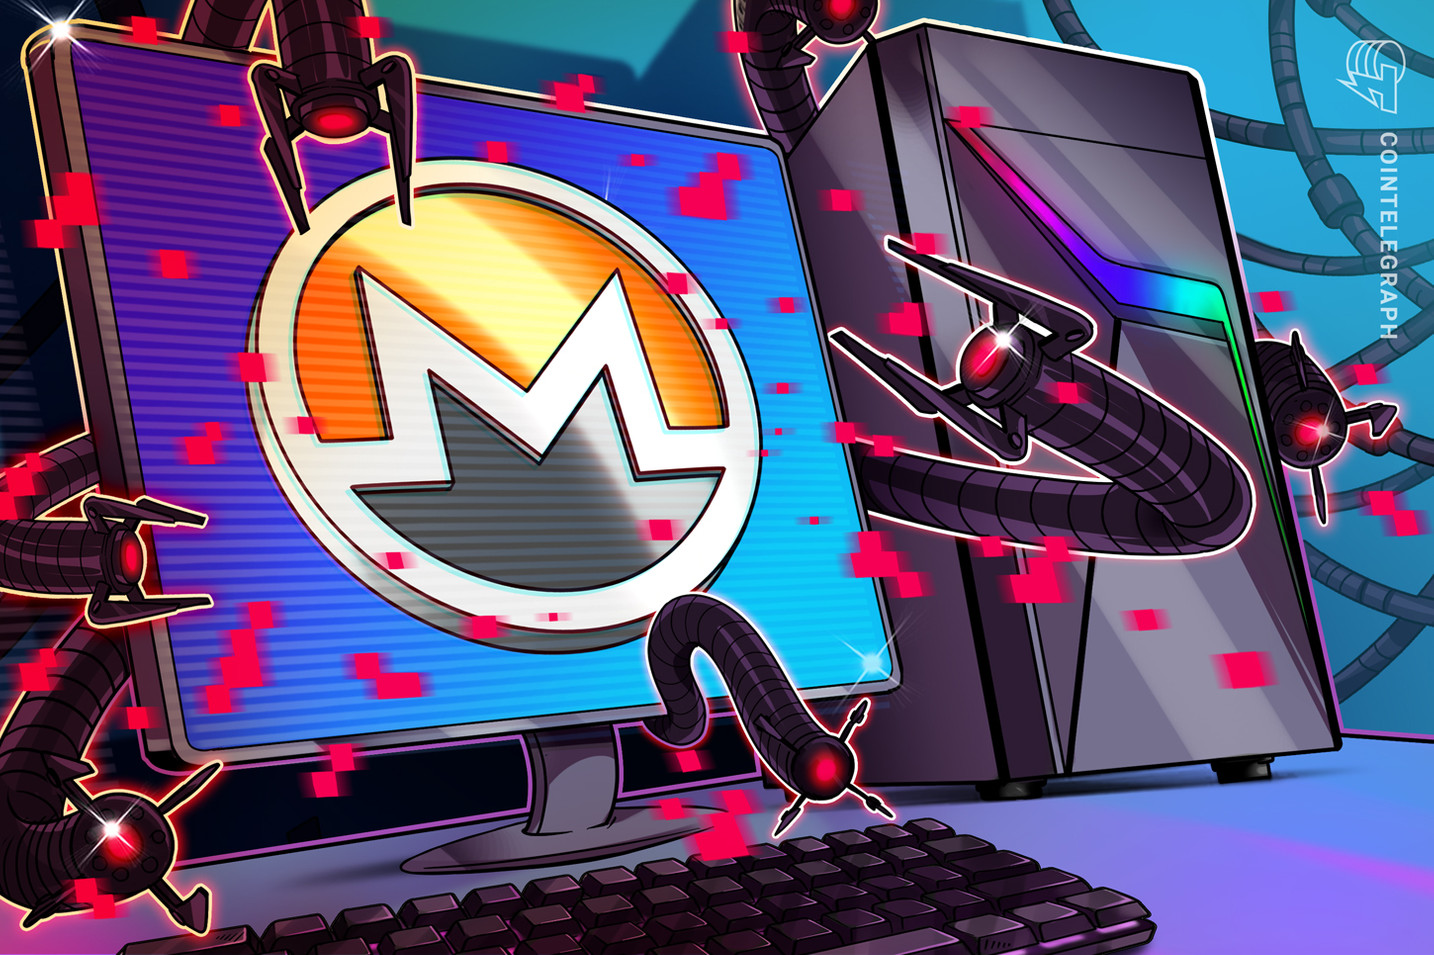 Researchers detect new malware targeting Kubernetes clusters to mine Monero